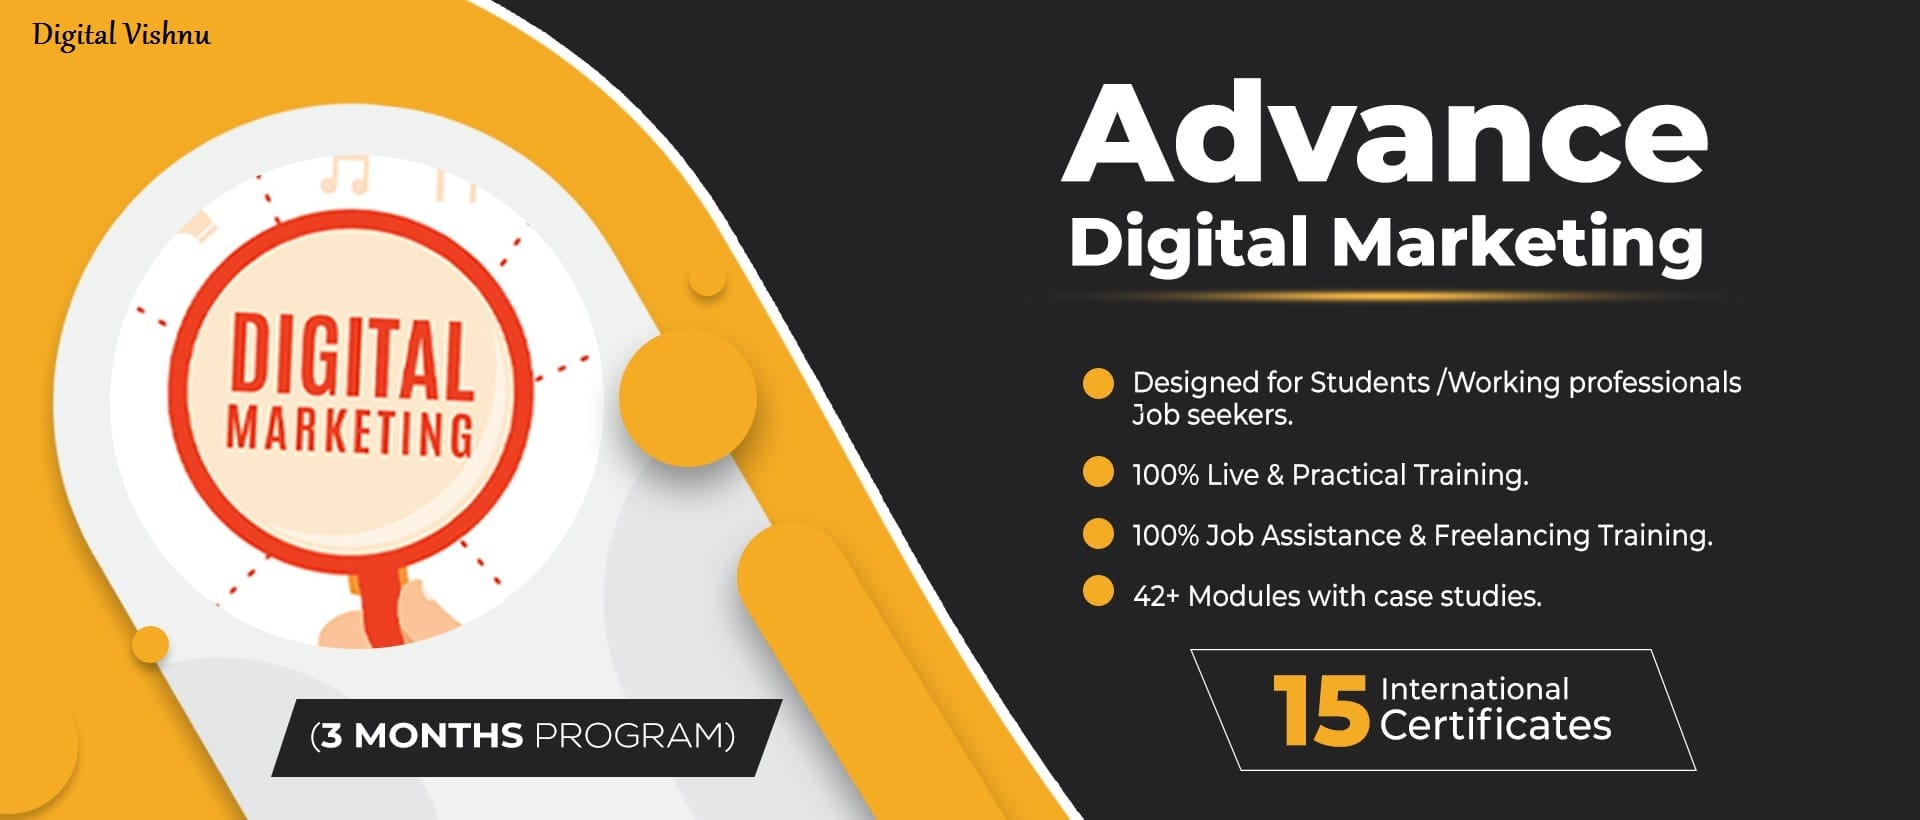 Advanced Digital Marketing Course Training in Madurai Digital Vishnu